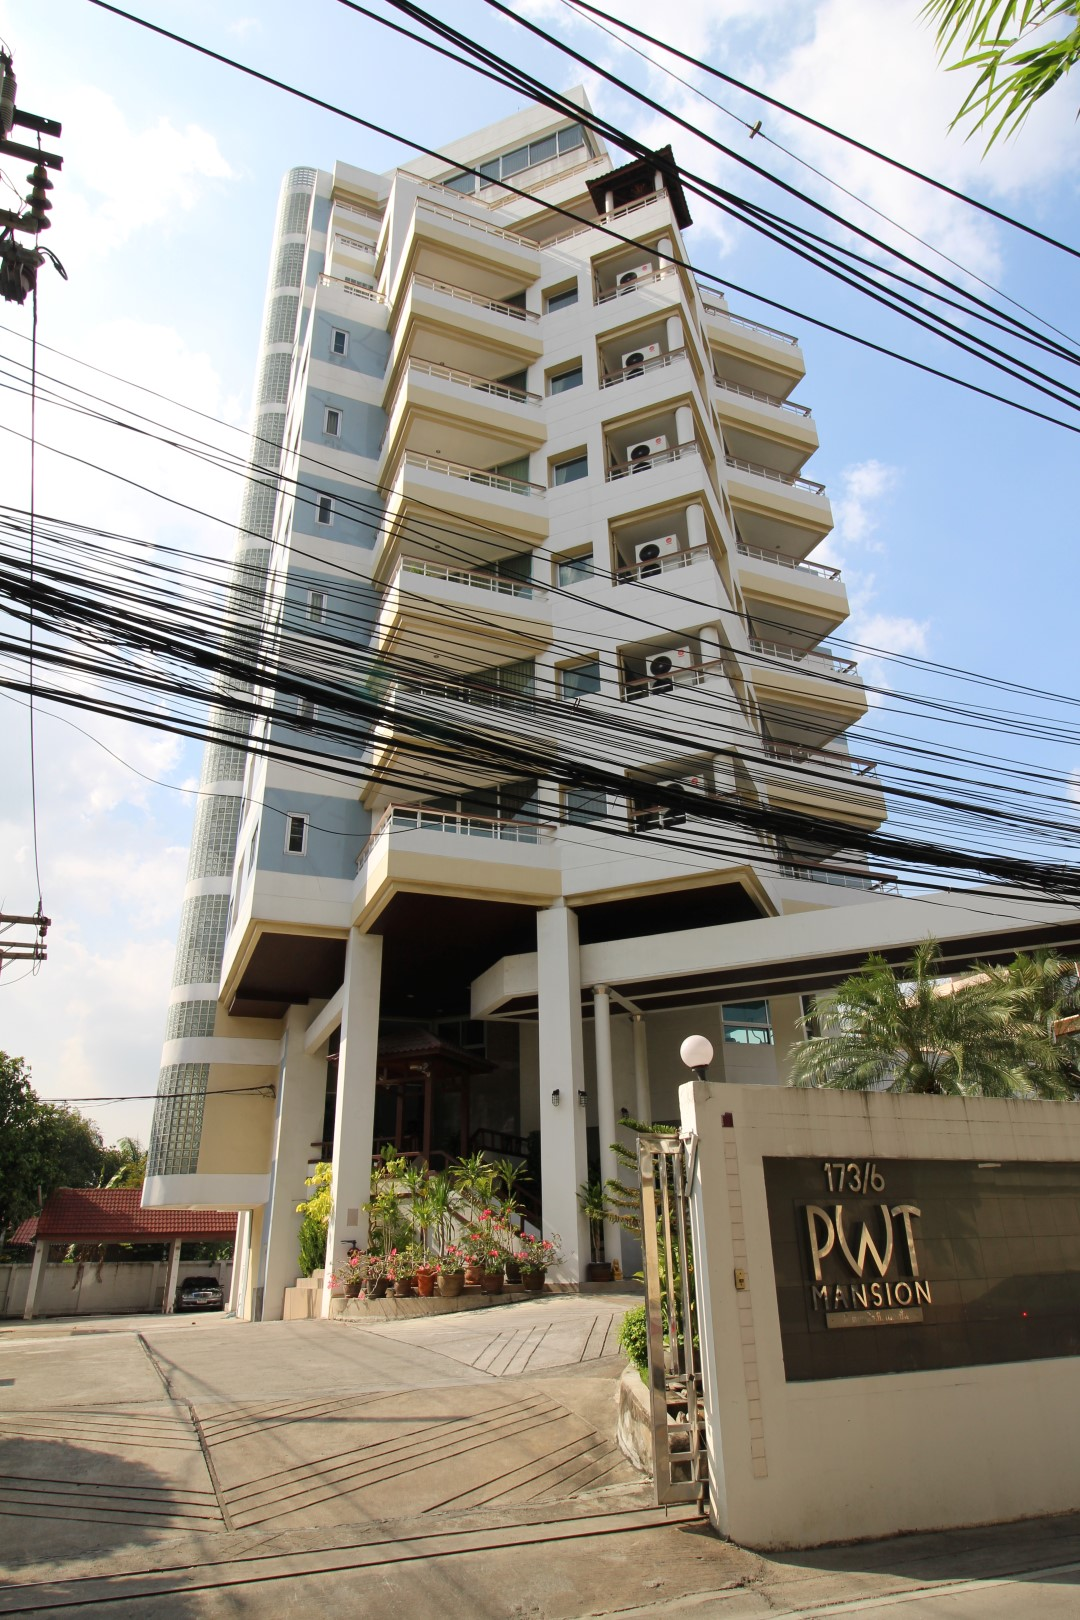 pwt mansion sukhumvit 16 3